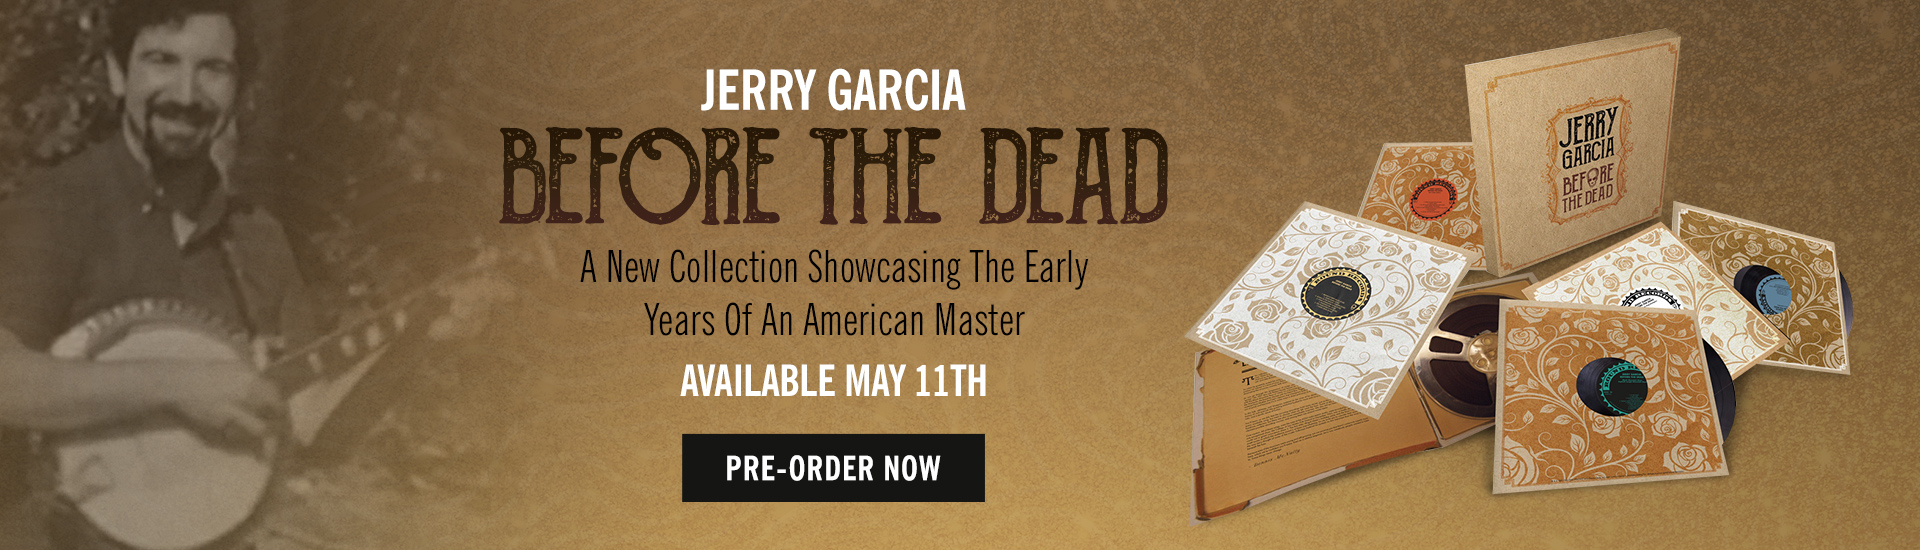 Jerry Garcia: Before The Dead- Pre-order today!